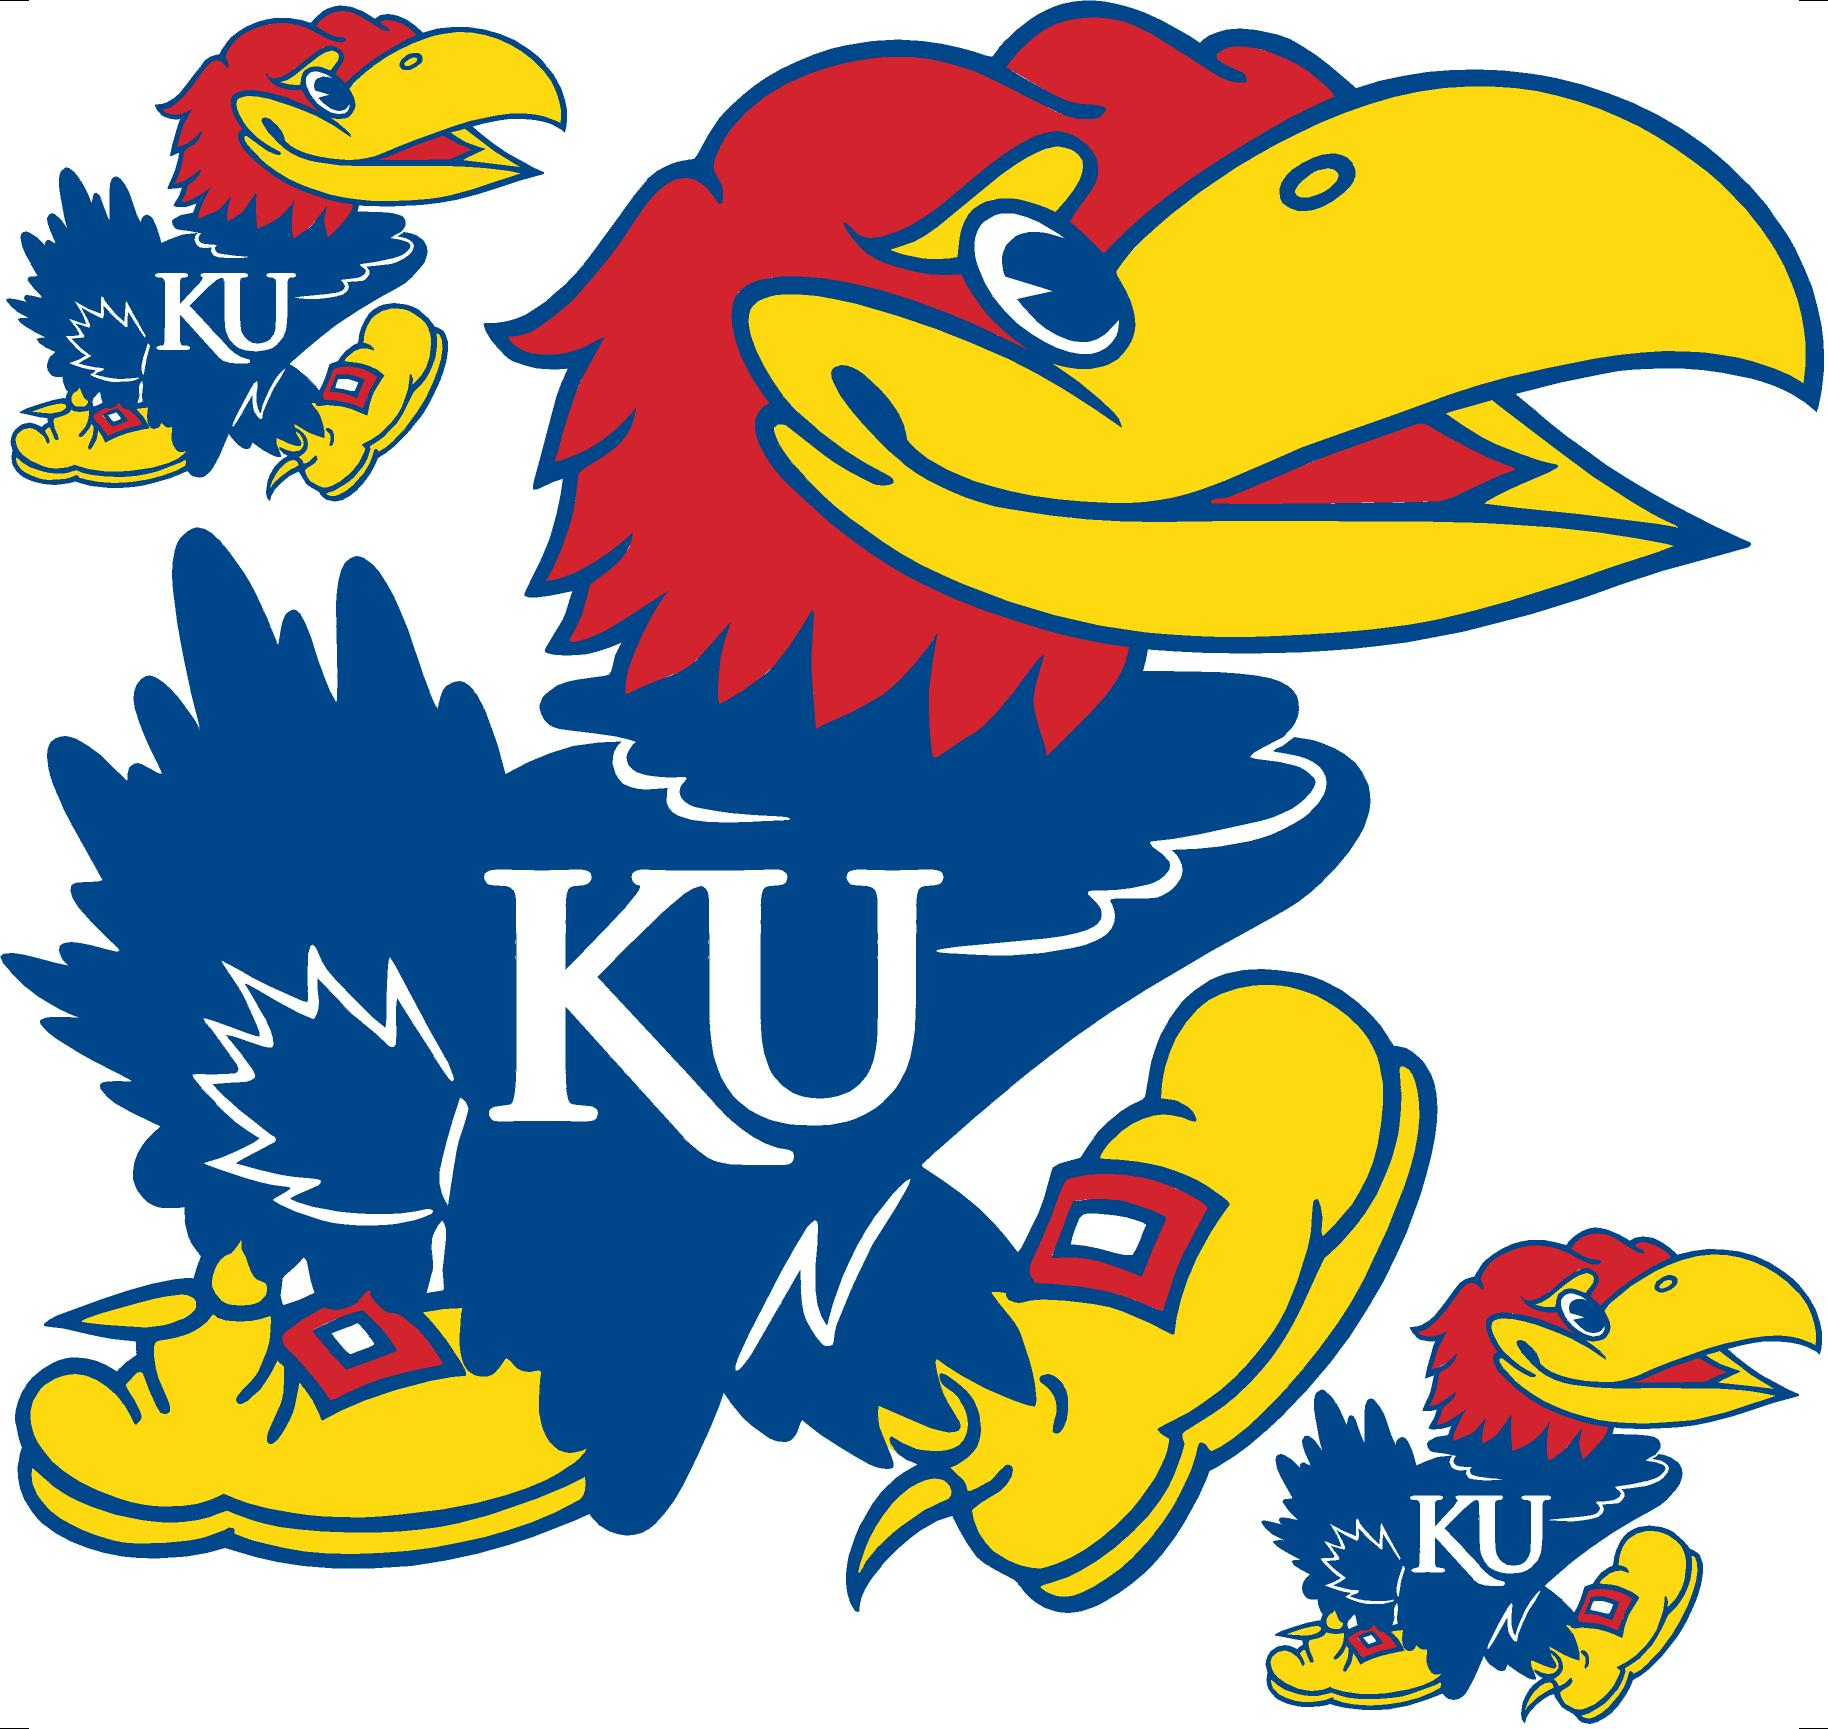 Kansas Team E-Book (2002 - 2012)